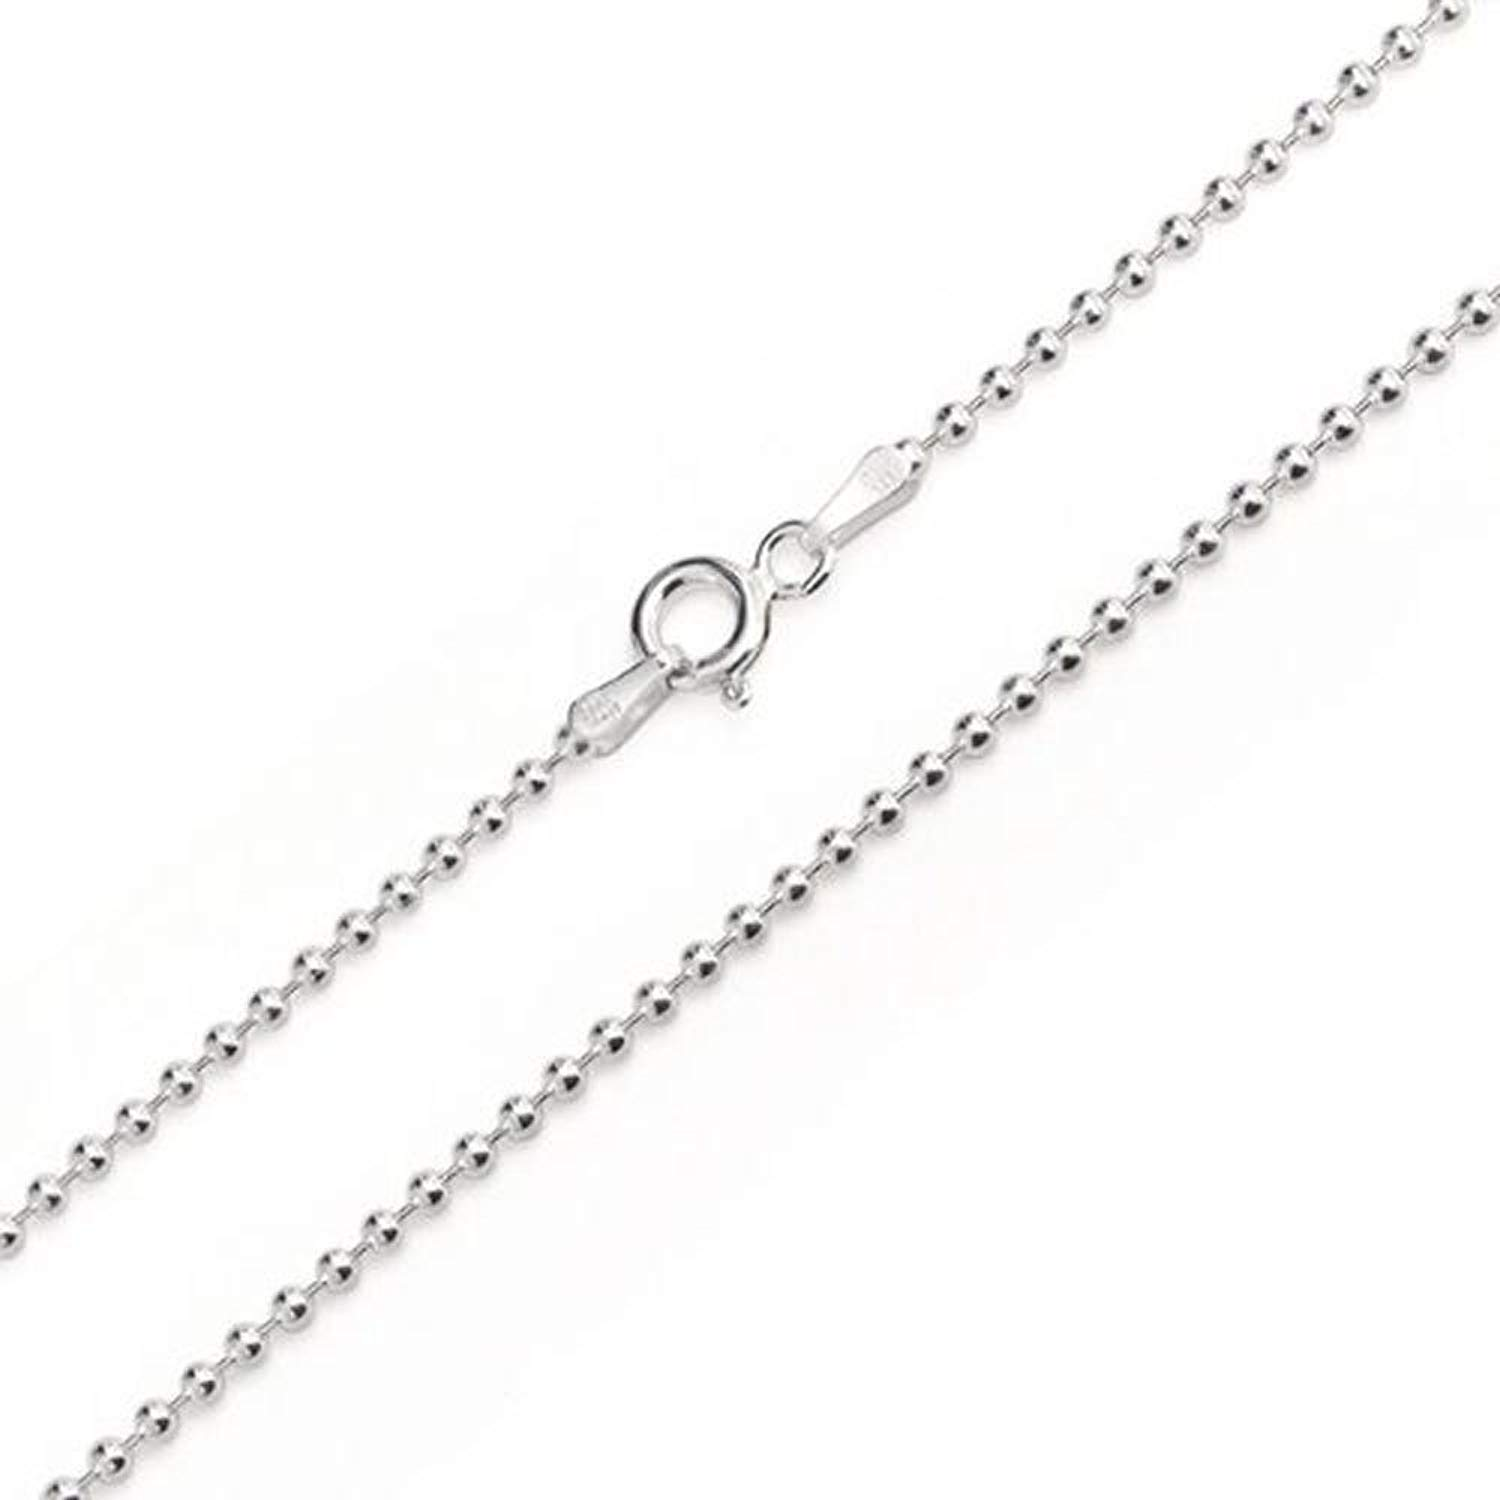 """3.0mm Solid Round Link Ball Beaded Chain Necklace & Bracelet Italian .925 Sterling Silver 7"""", 8"""", 14"""", 16"""", 18"""", 20"""", 22"""", 24"""", 26"""", 30"""", 36"""" inches - 300 Gauge (Nickel Free)"""